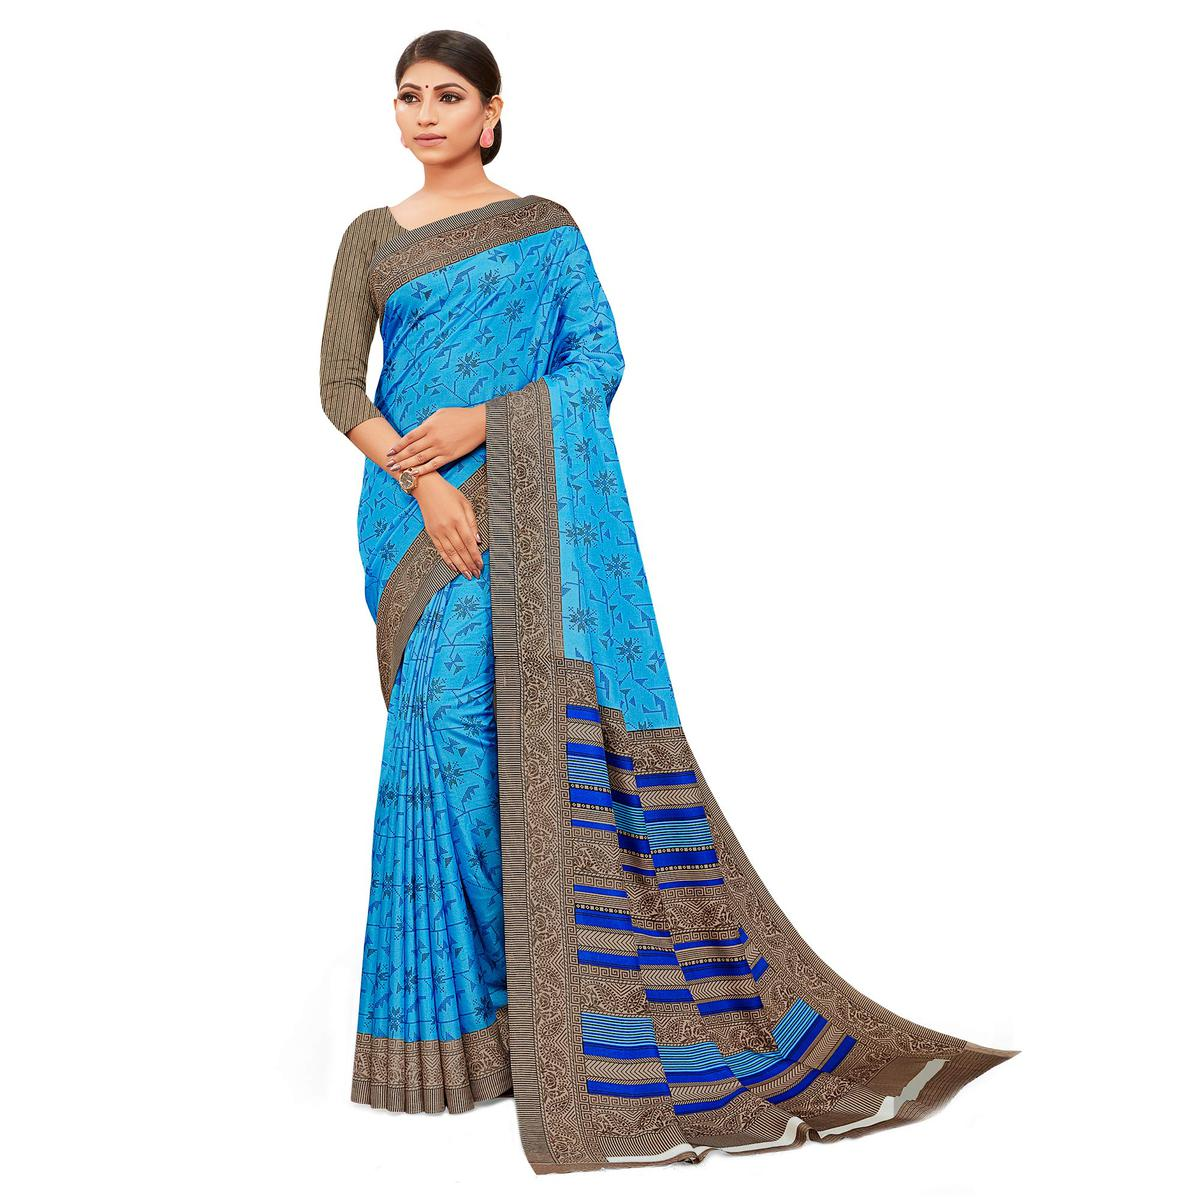 Entrancing Blue Colored Casual Wear Printed Manipuri Cotton Saree